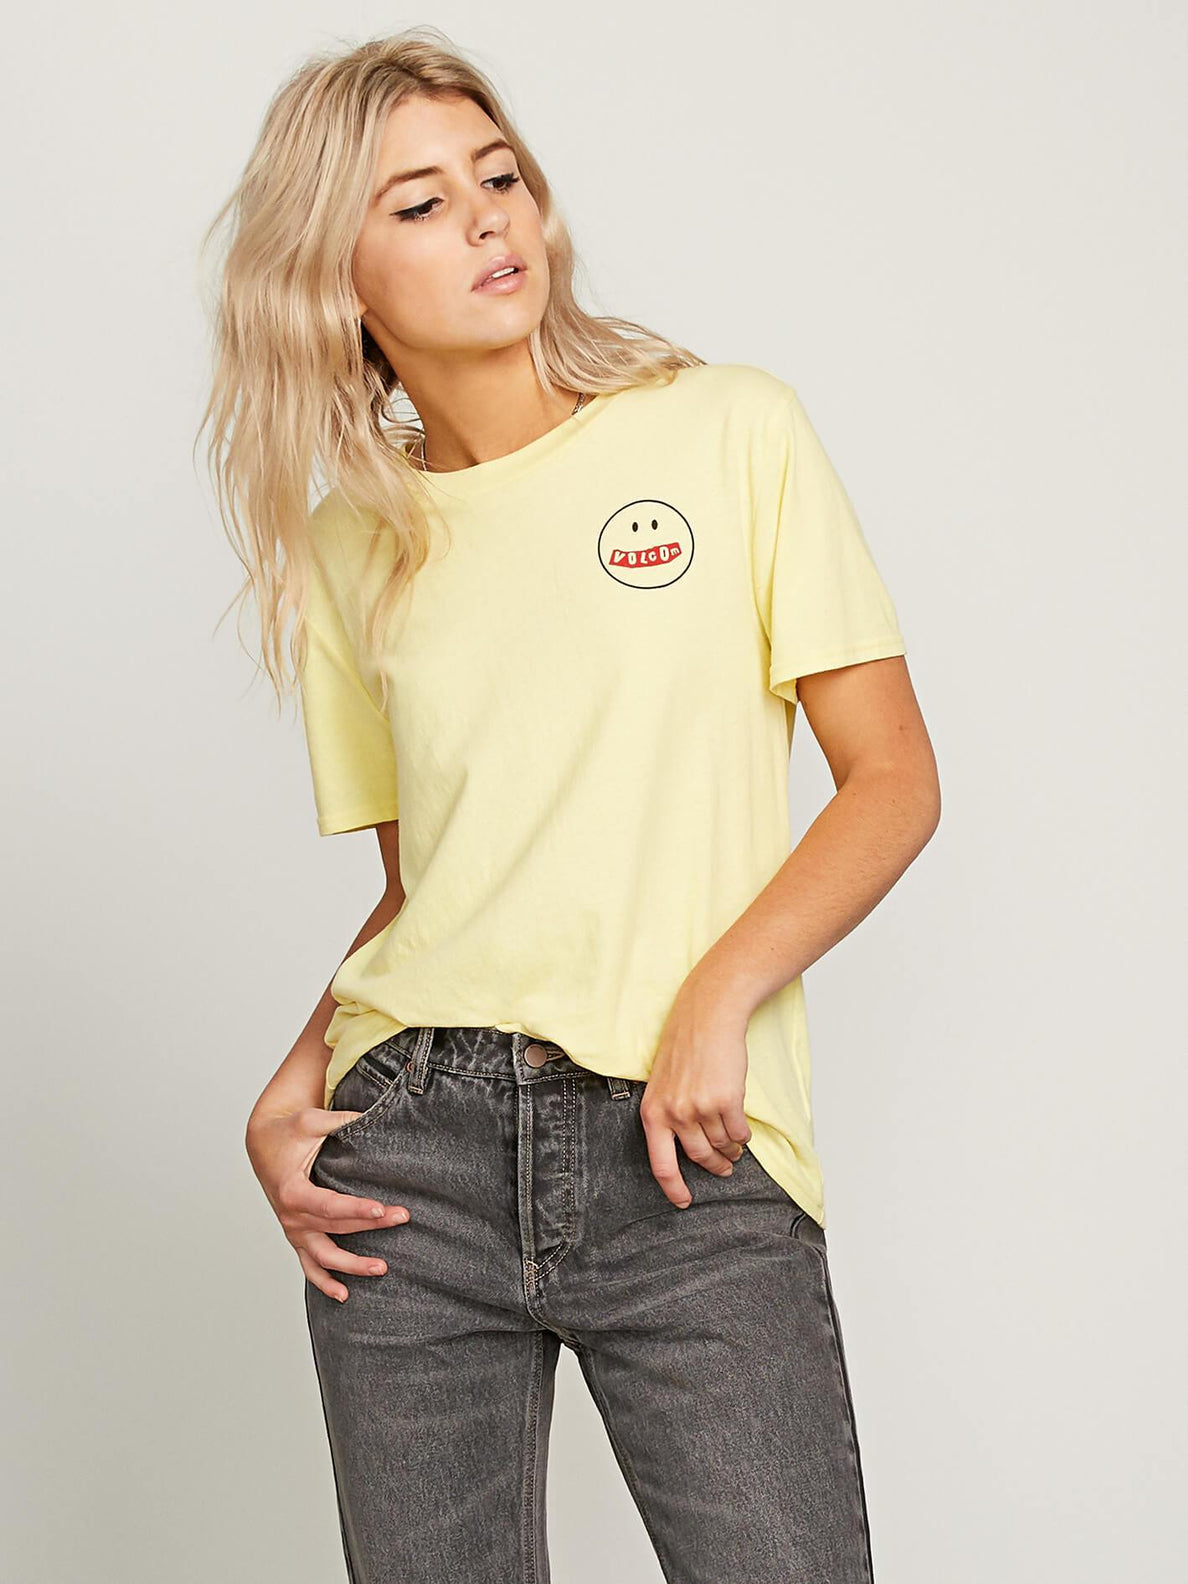 I'll Take Both Tee - Faded Yellow